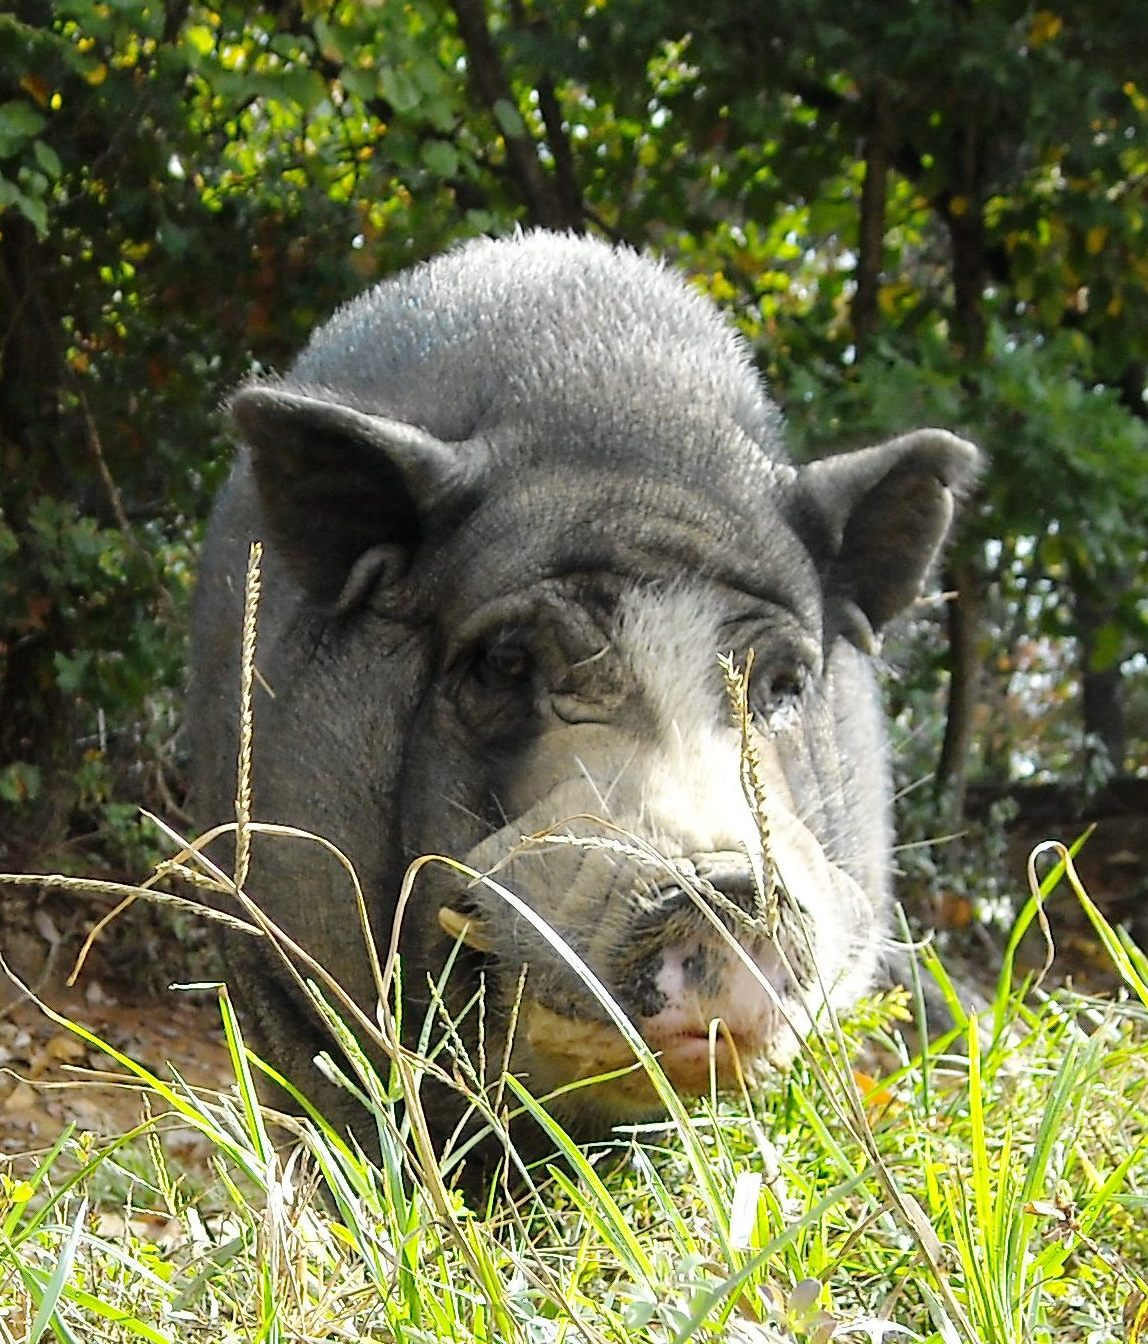 the aging pig